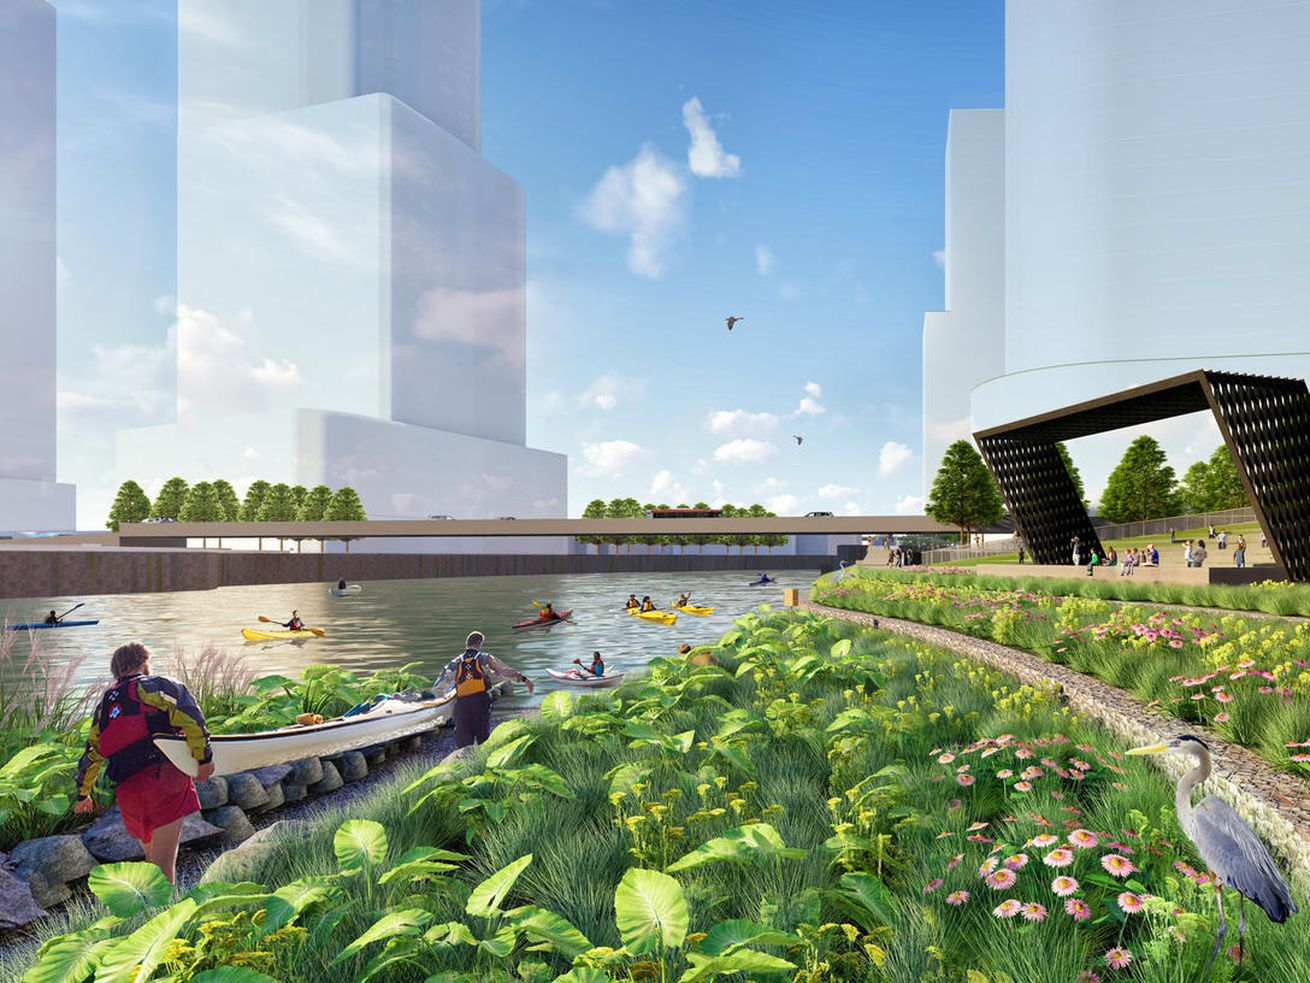 The megaproject's park space will be designed by New York landscape architect James Corner Field Operations.